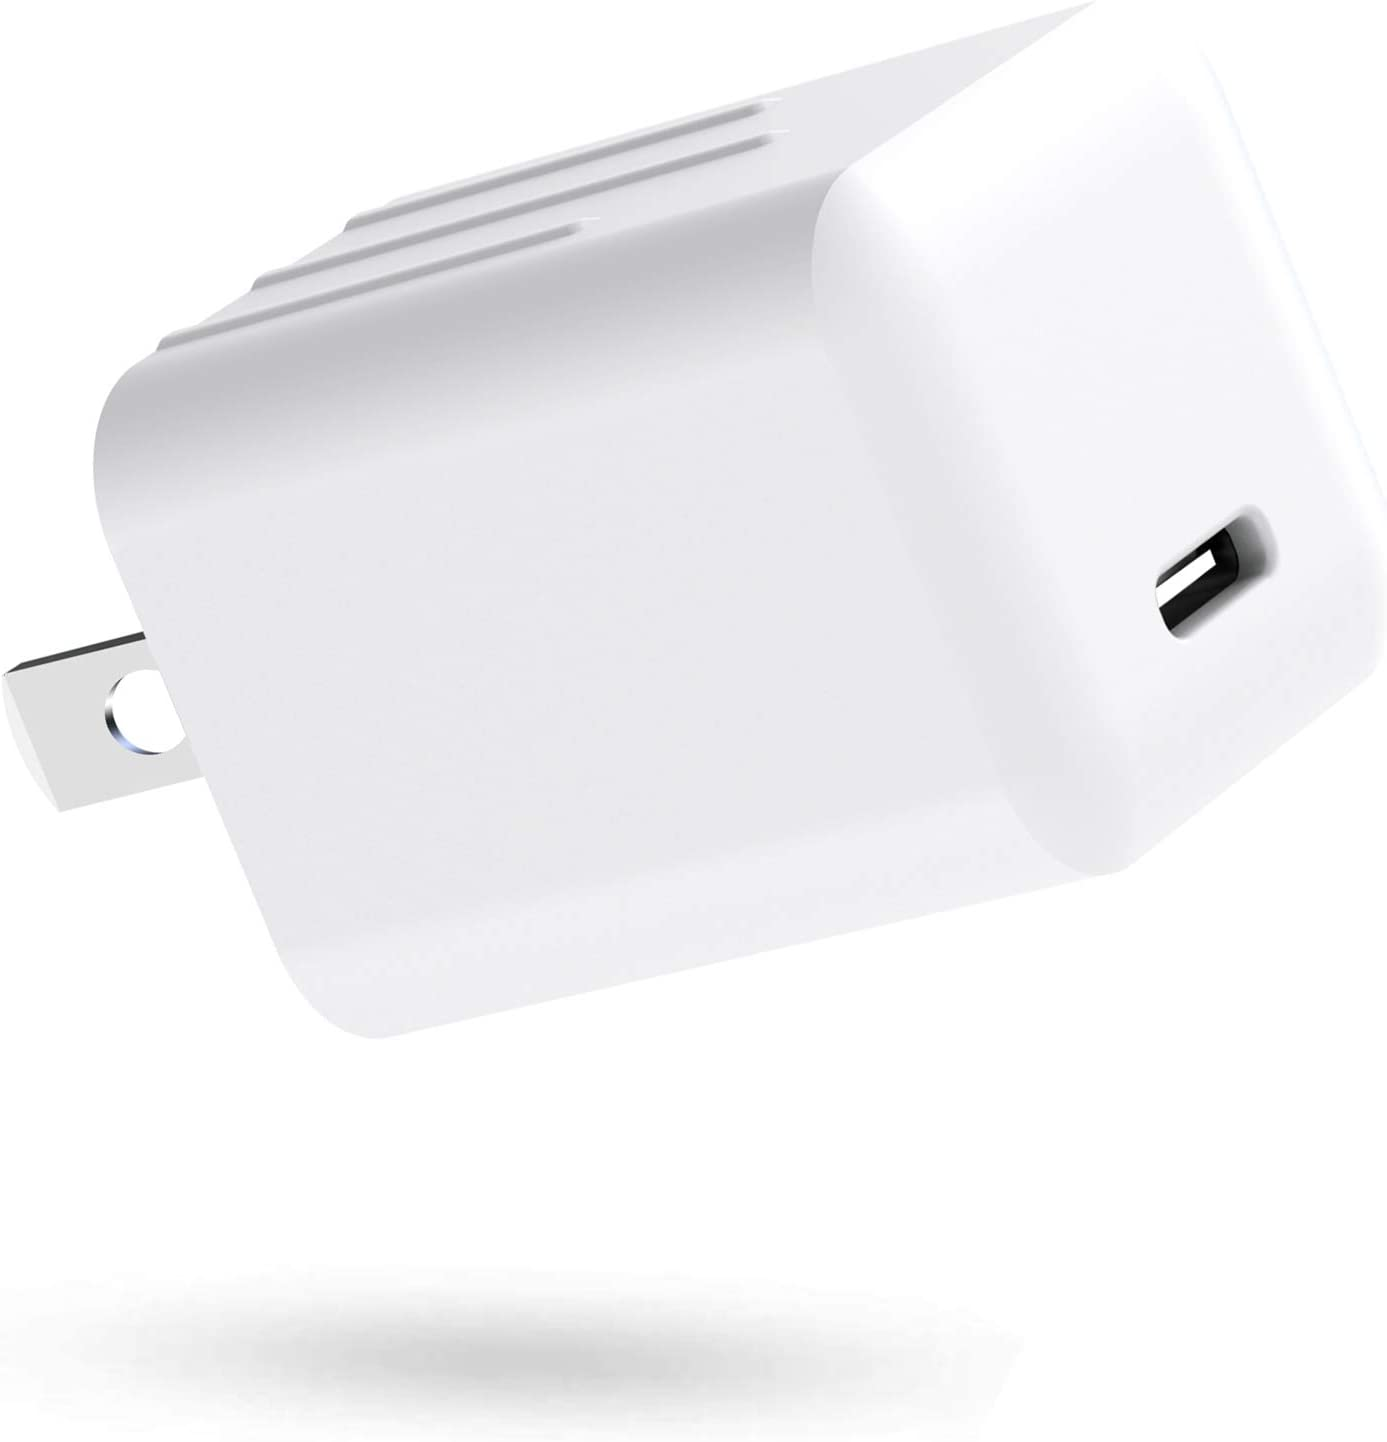 USB C Charger, 20W PD Wall Charger for iPhone 12 JAHMAI Ultra-Compact Type-C Power Adapter Fast Charging Plug Block Compatible with iPhone 12 Pro, 12Pro Max, Mini, 11, XR, XS, X, 8 Plus, iPad -White